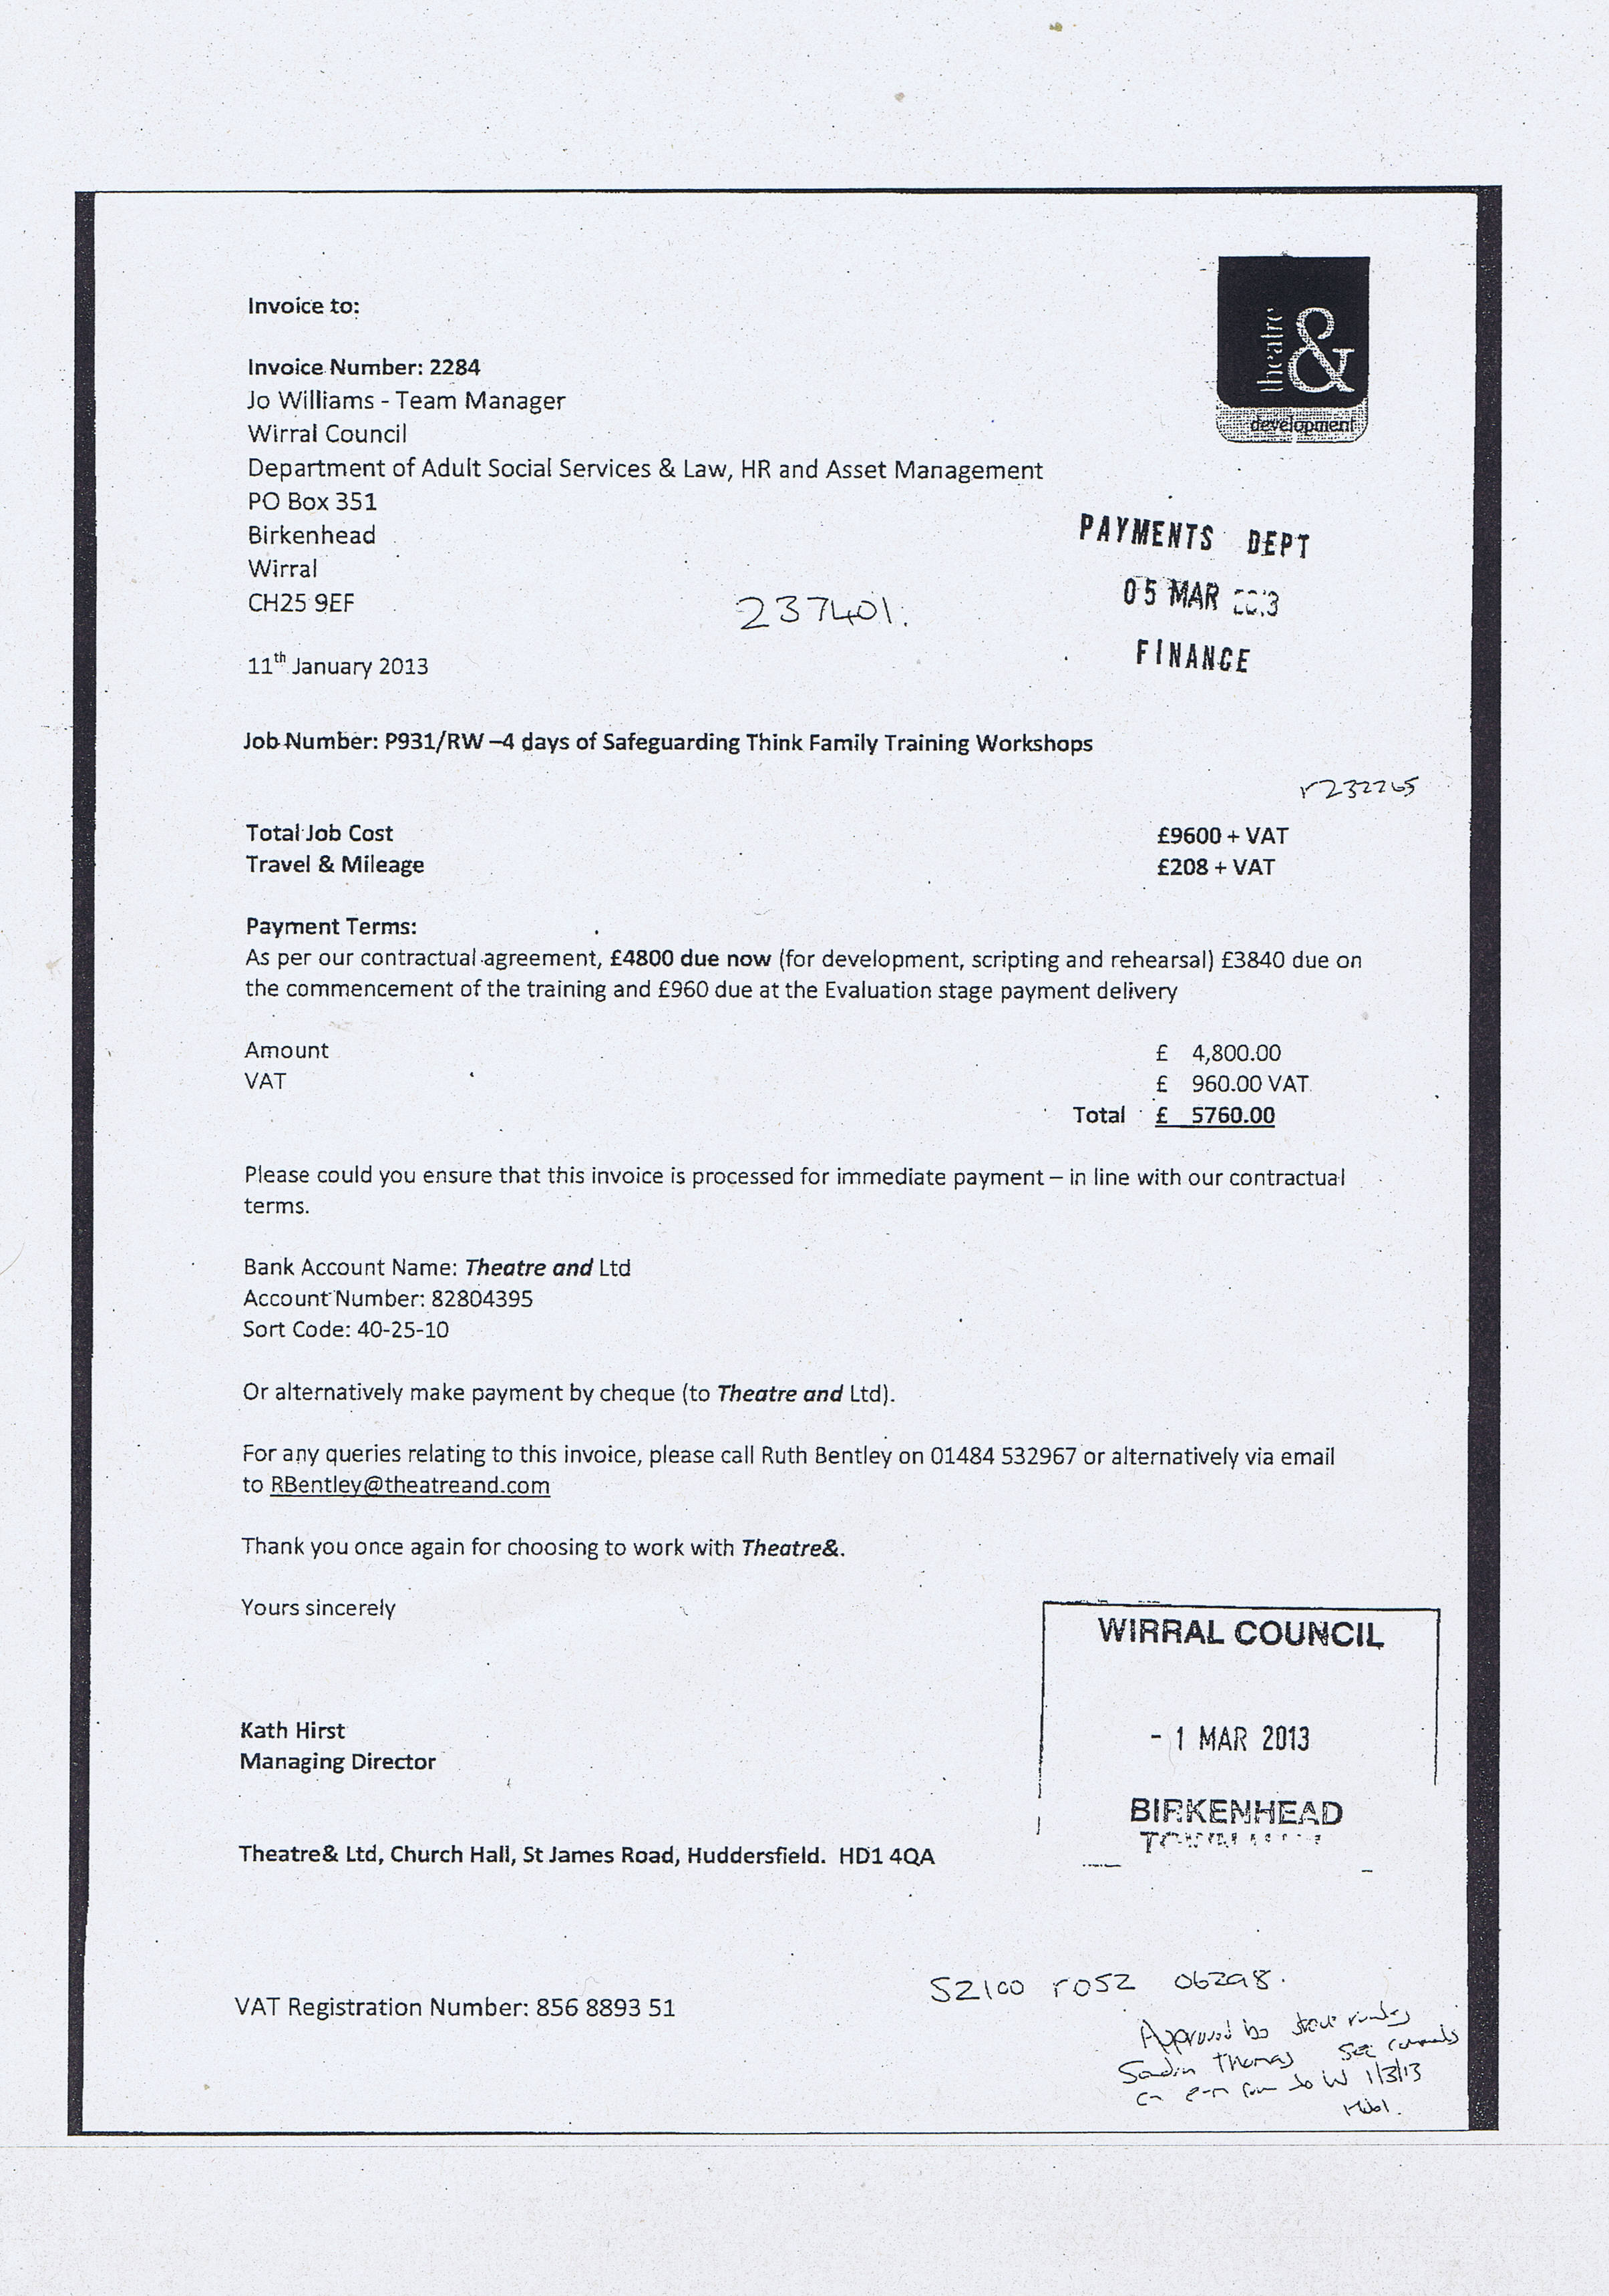 Wirral Council Theatre and invoice January 2013